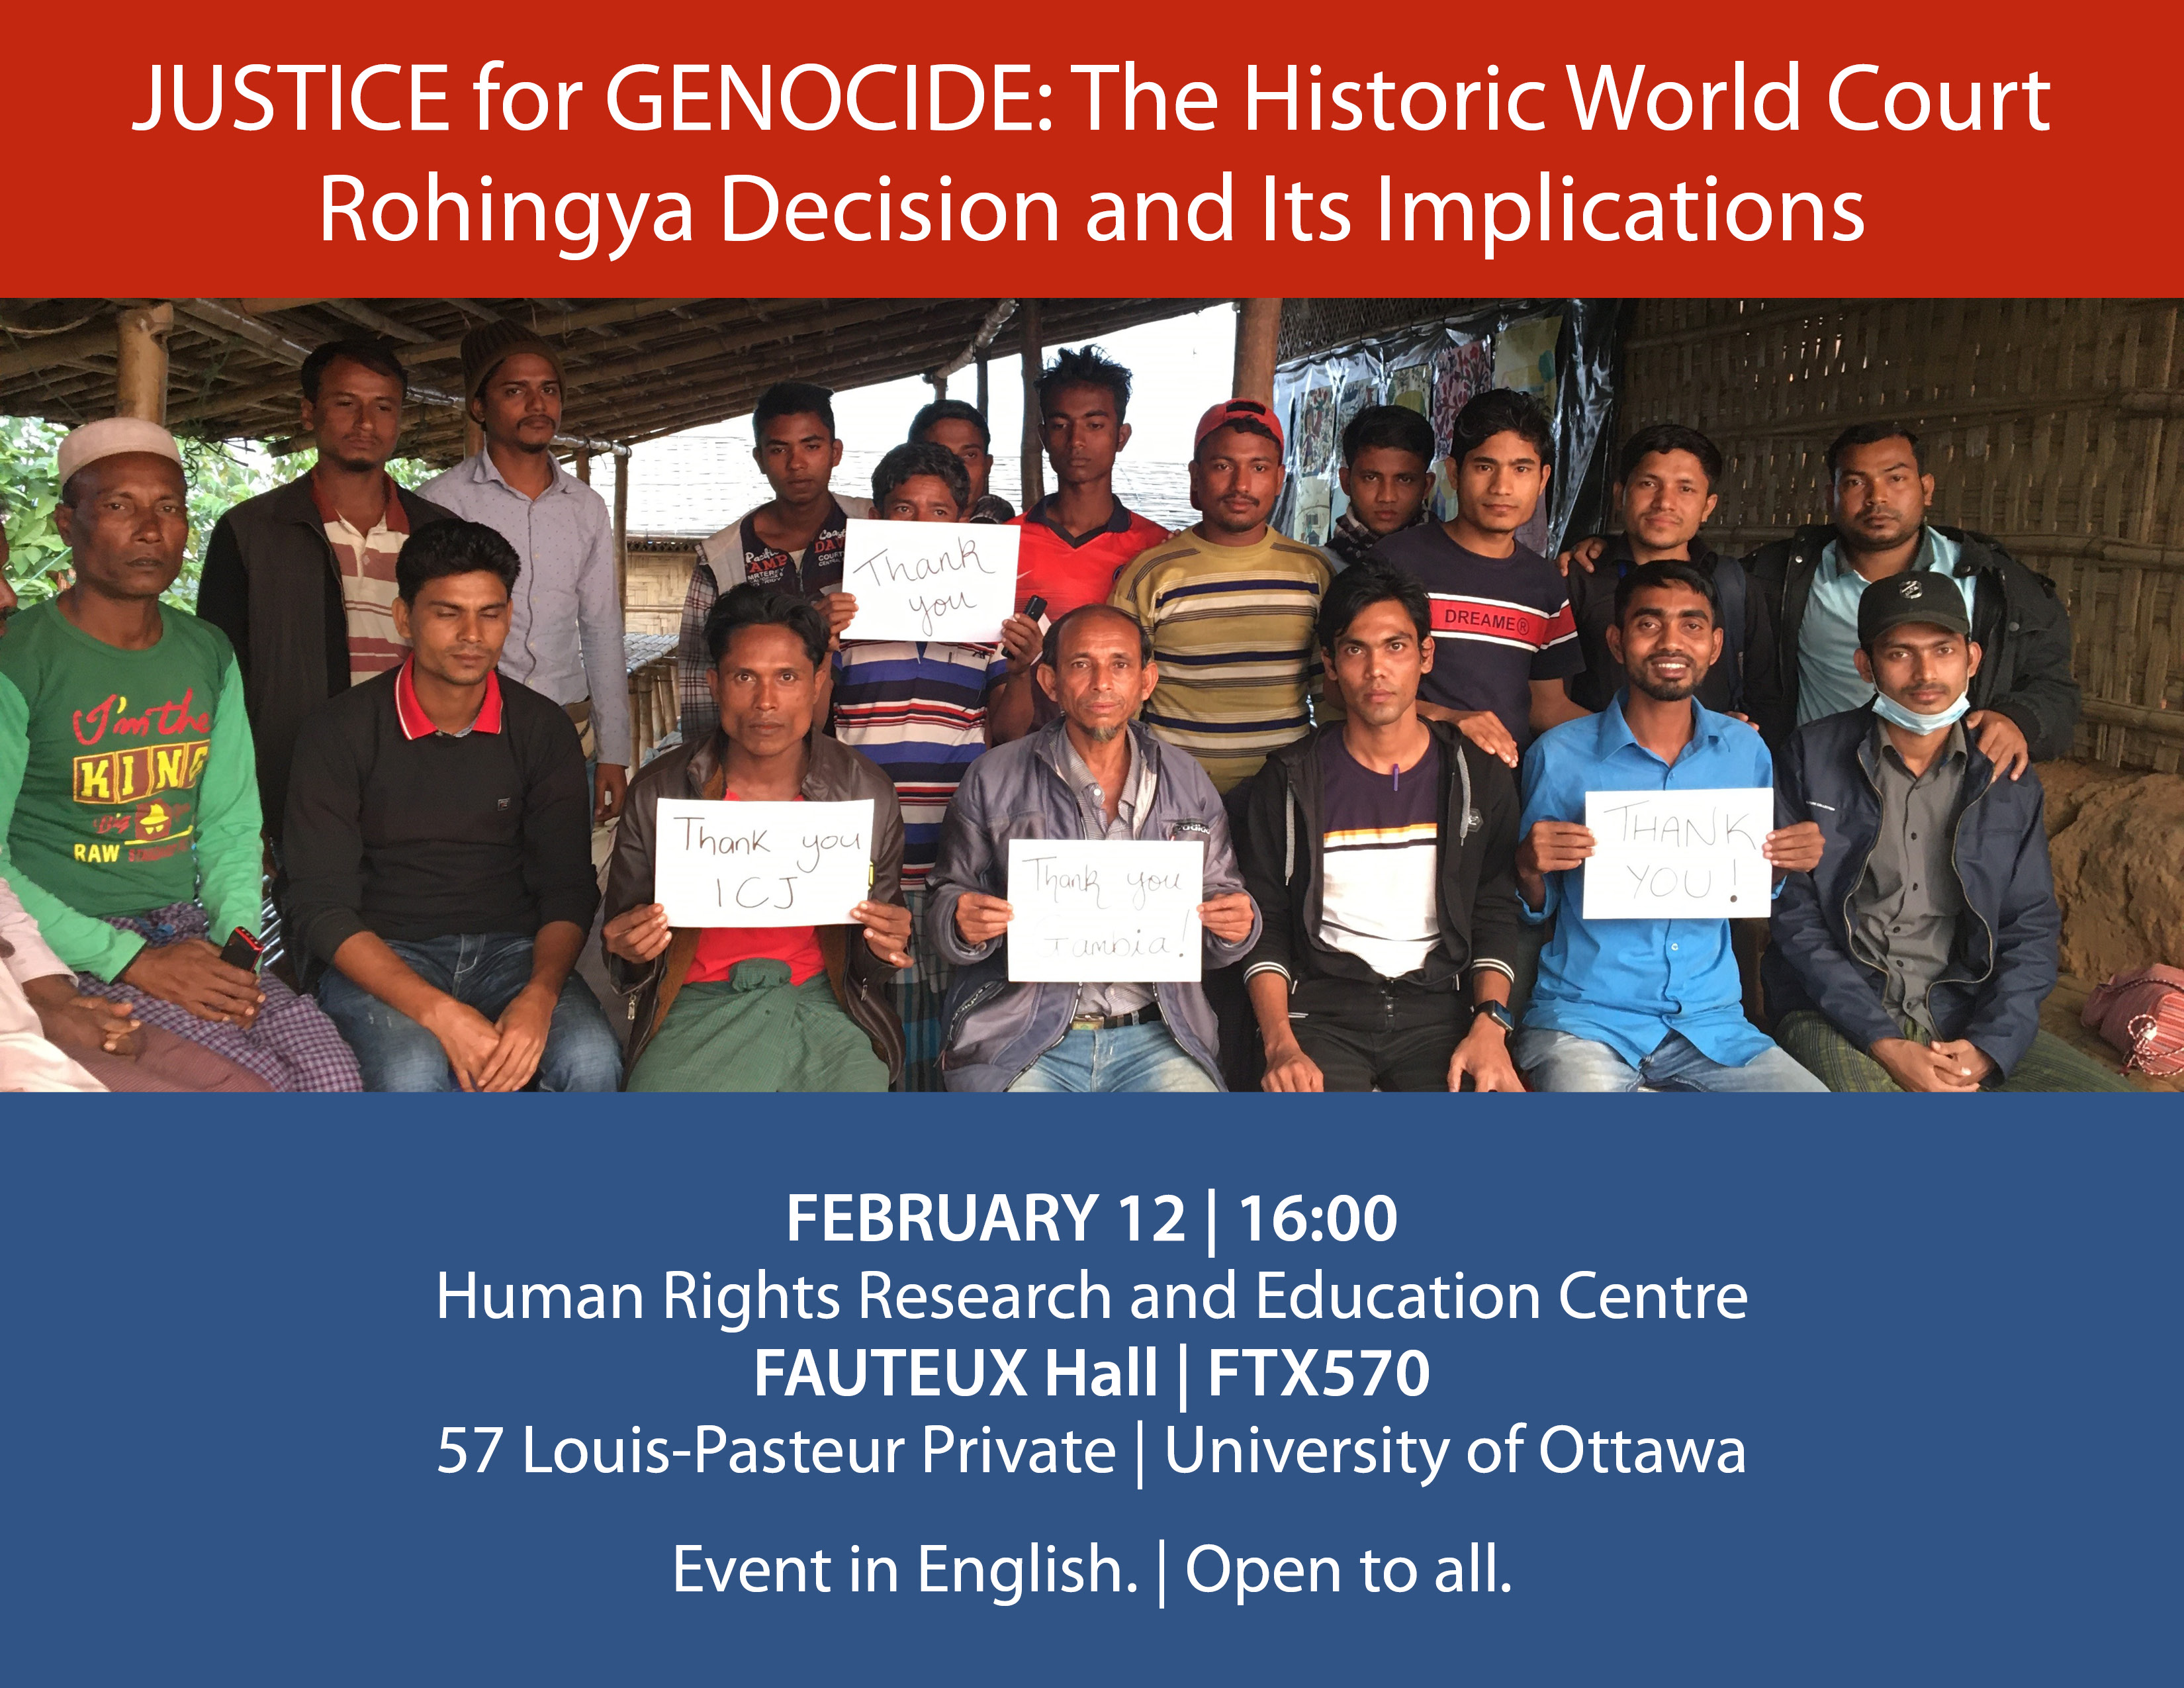 12 FEB 2020 - Justice for Genocide